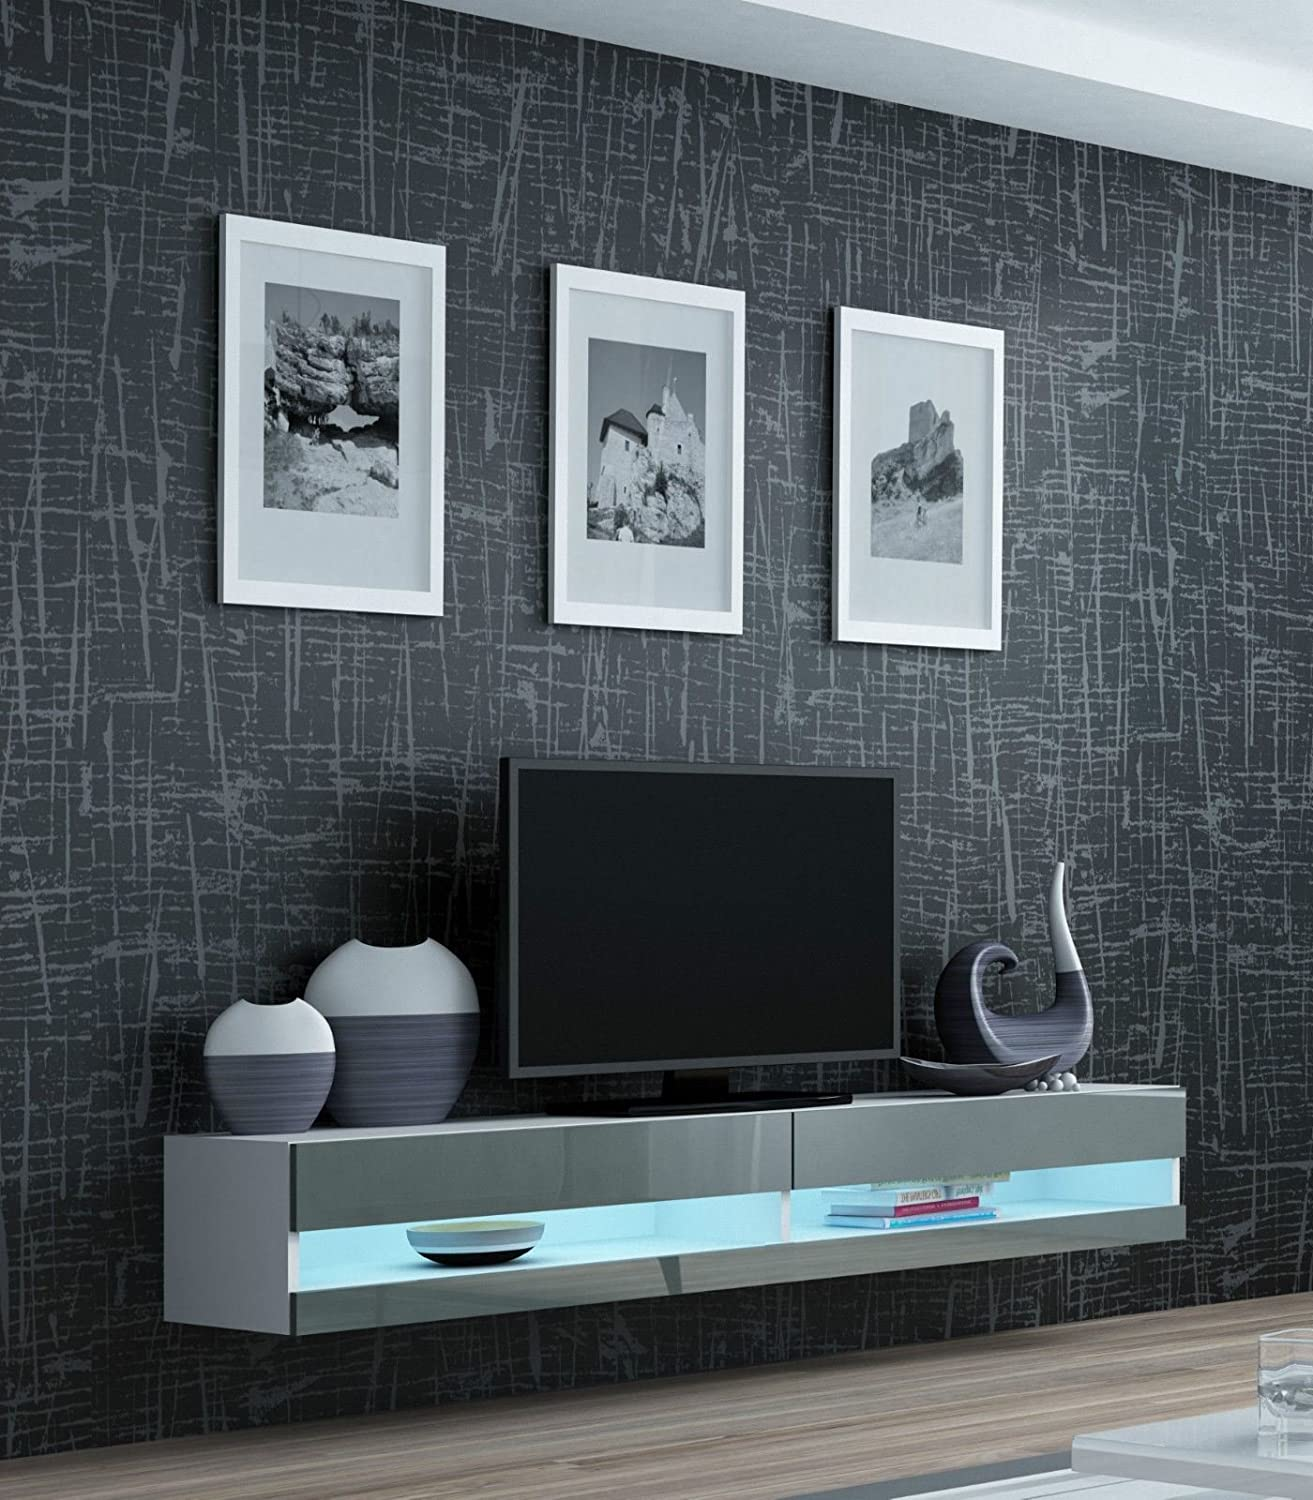 High Gloss Living Room Set With Led Lights Tv Stand Wall Mounted Cabinet Modern Display Units Floating Design 1 Tv Unit Grey Amazon Co Uk Kitchen Home